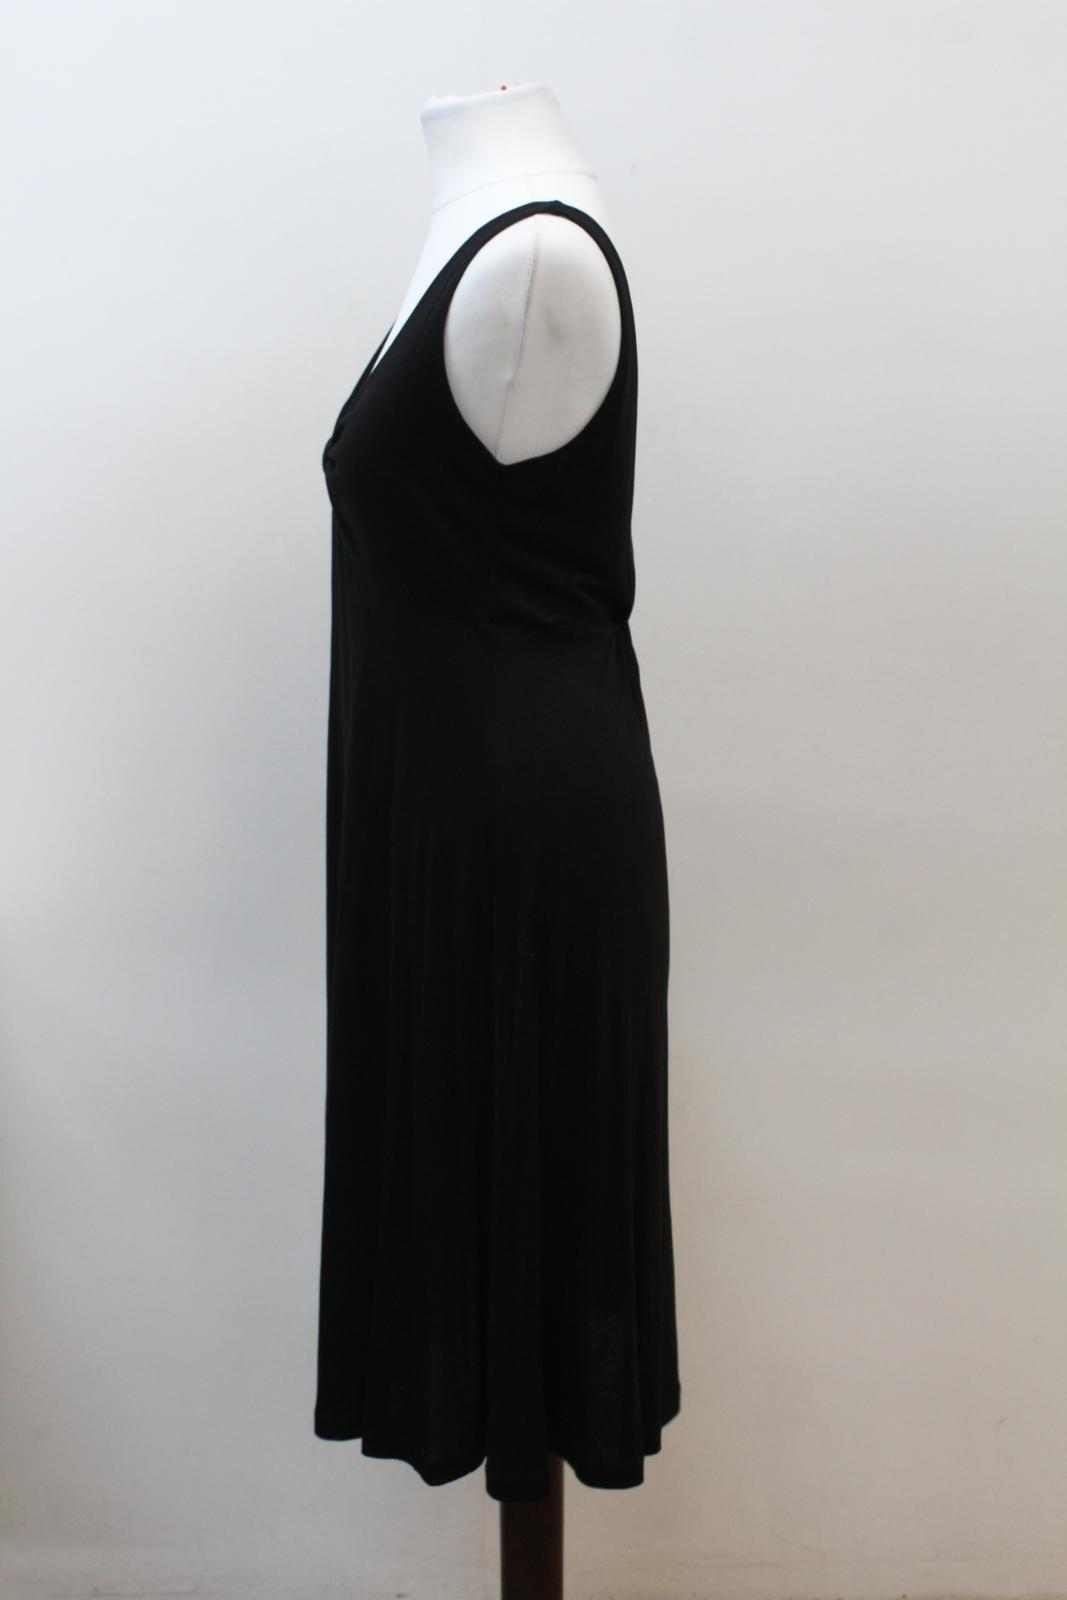 THE-WHITE-COMPANY-Ladies-Black-Sleeveless-V-Neck-Knot-Shift-Dress-Size-S thumbnail 6